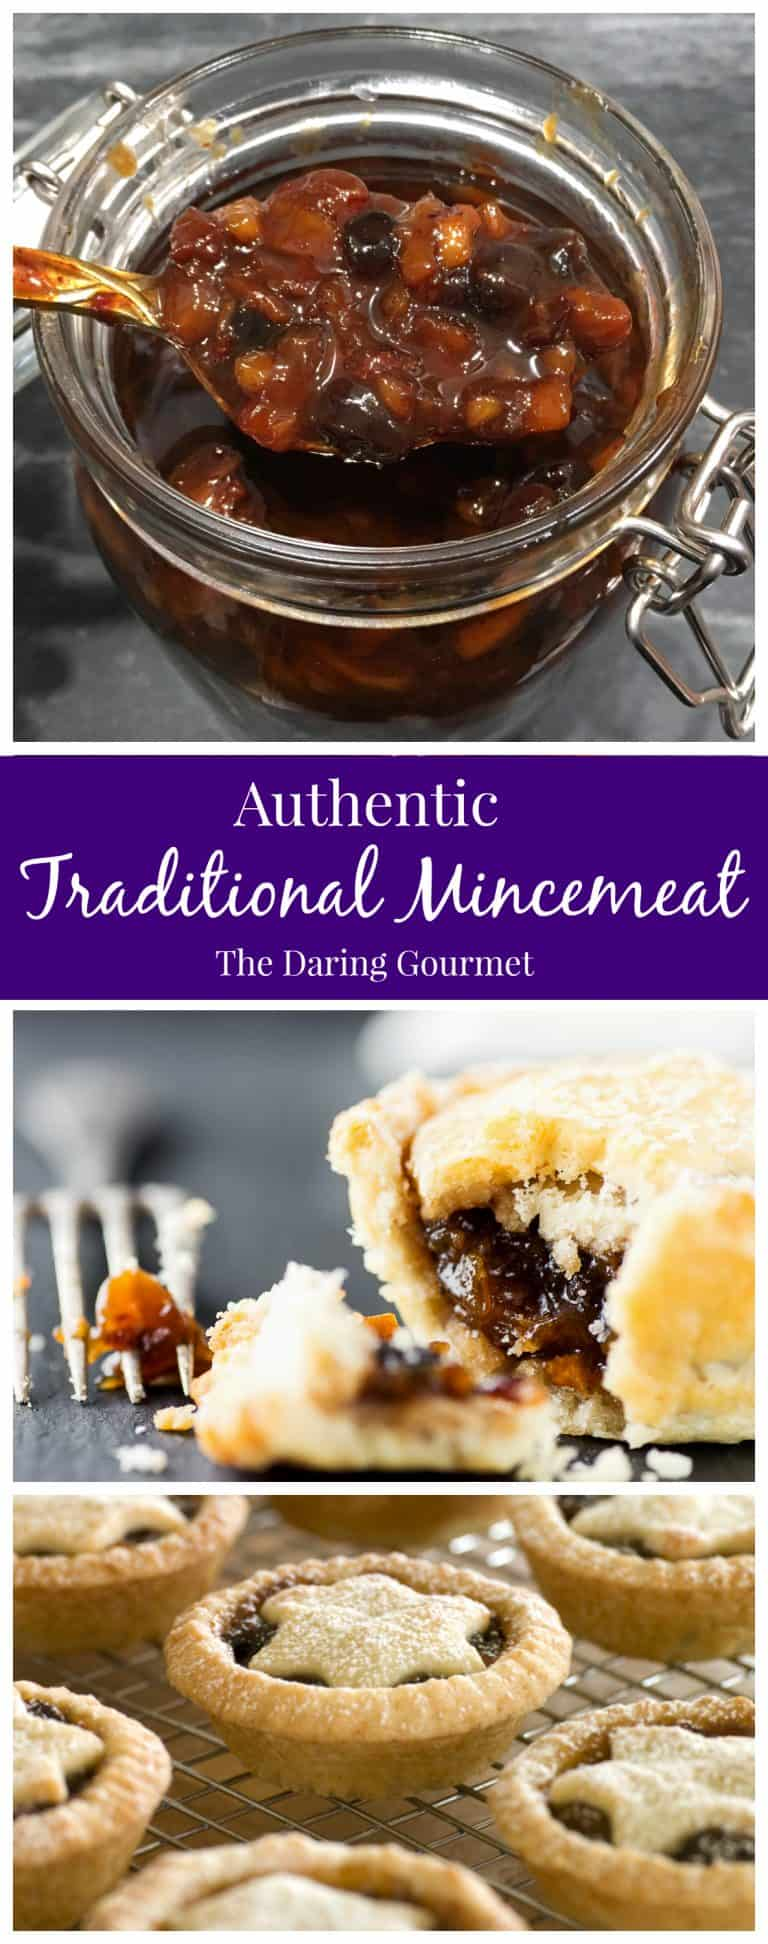 Best Traditional Mincemeat The Daring Gourmet